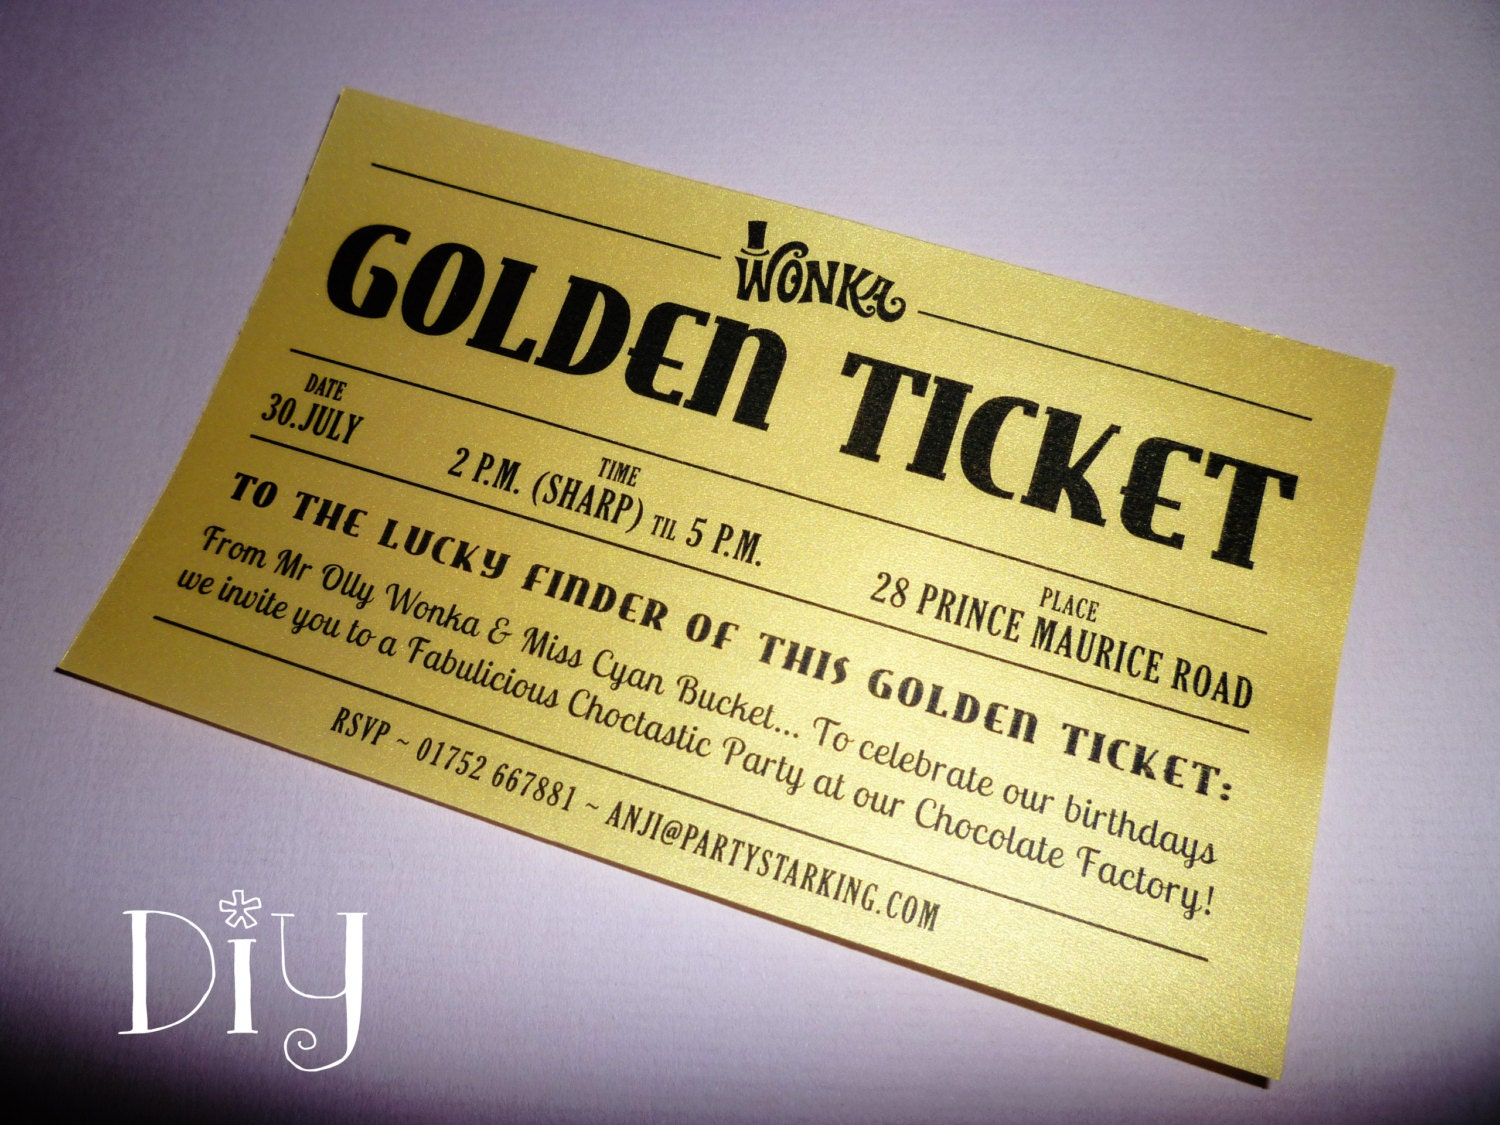 This is an image of Eloquent Printable Golden Tickets